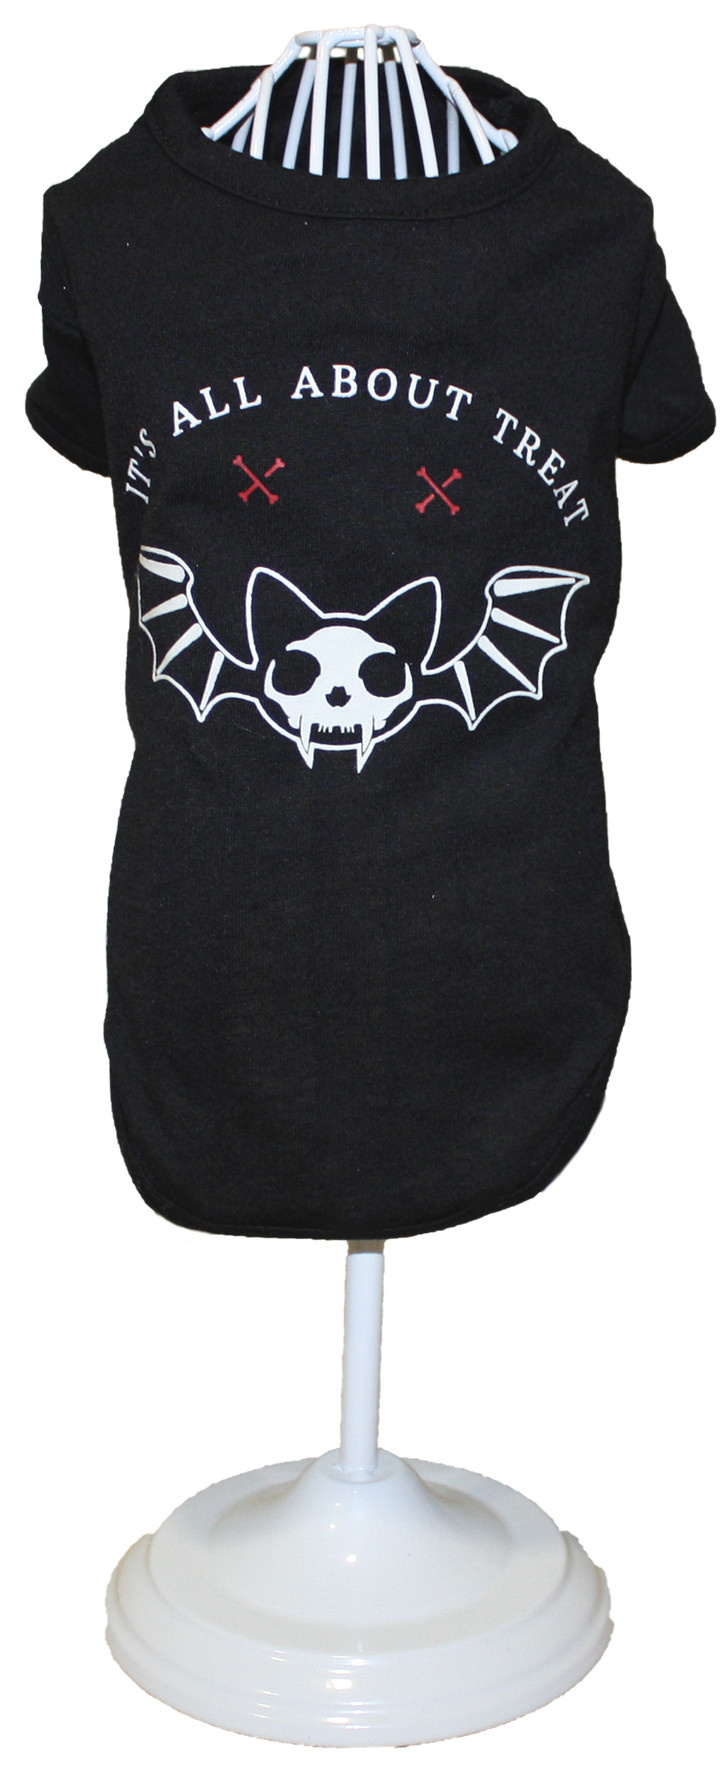 Croci t-shirt skull bat